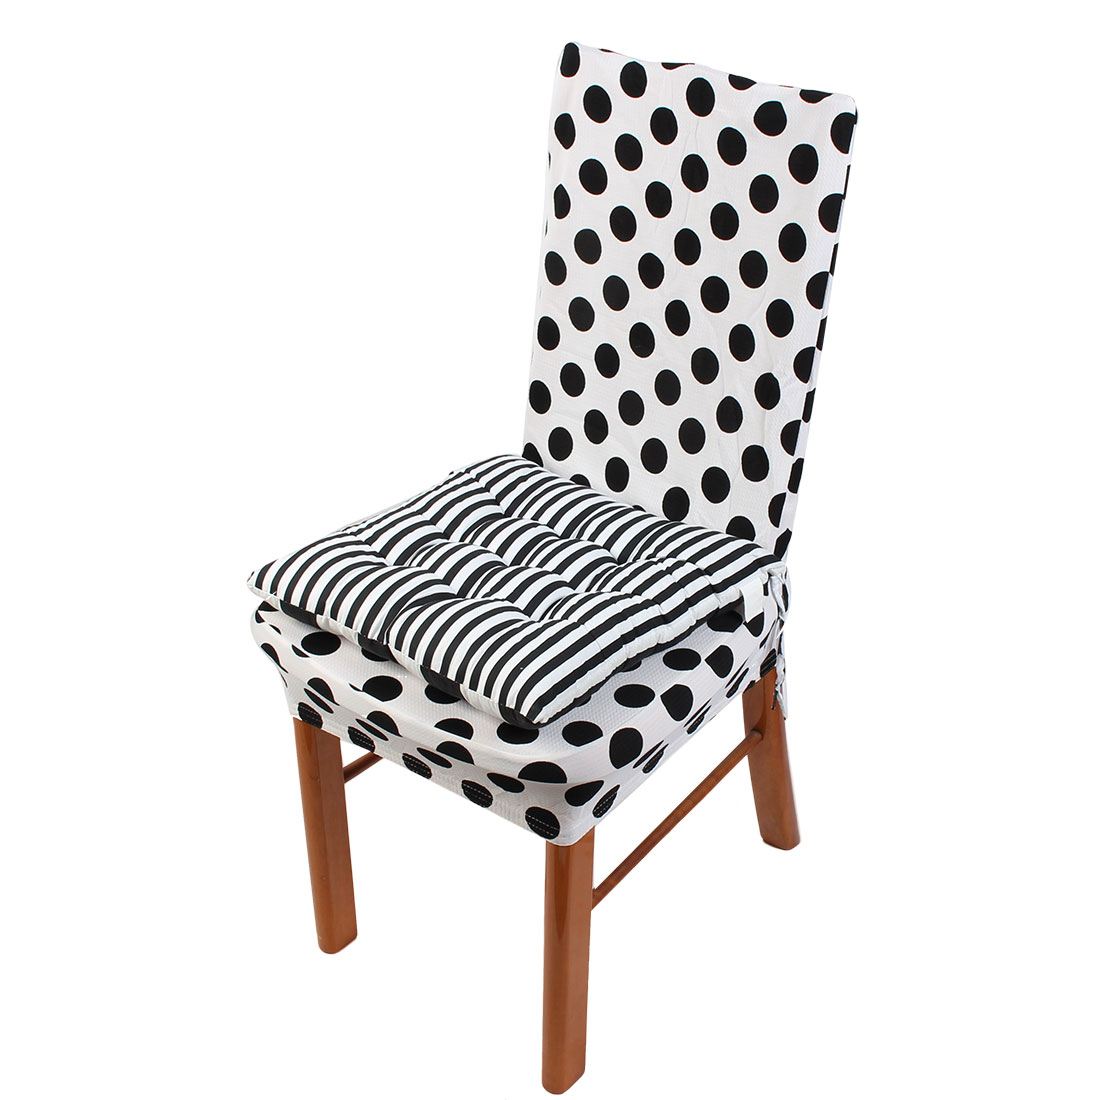 Home Office Polyester Square Shaped Stripes Pattern Chair Cushions Black White